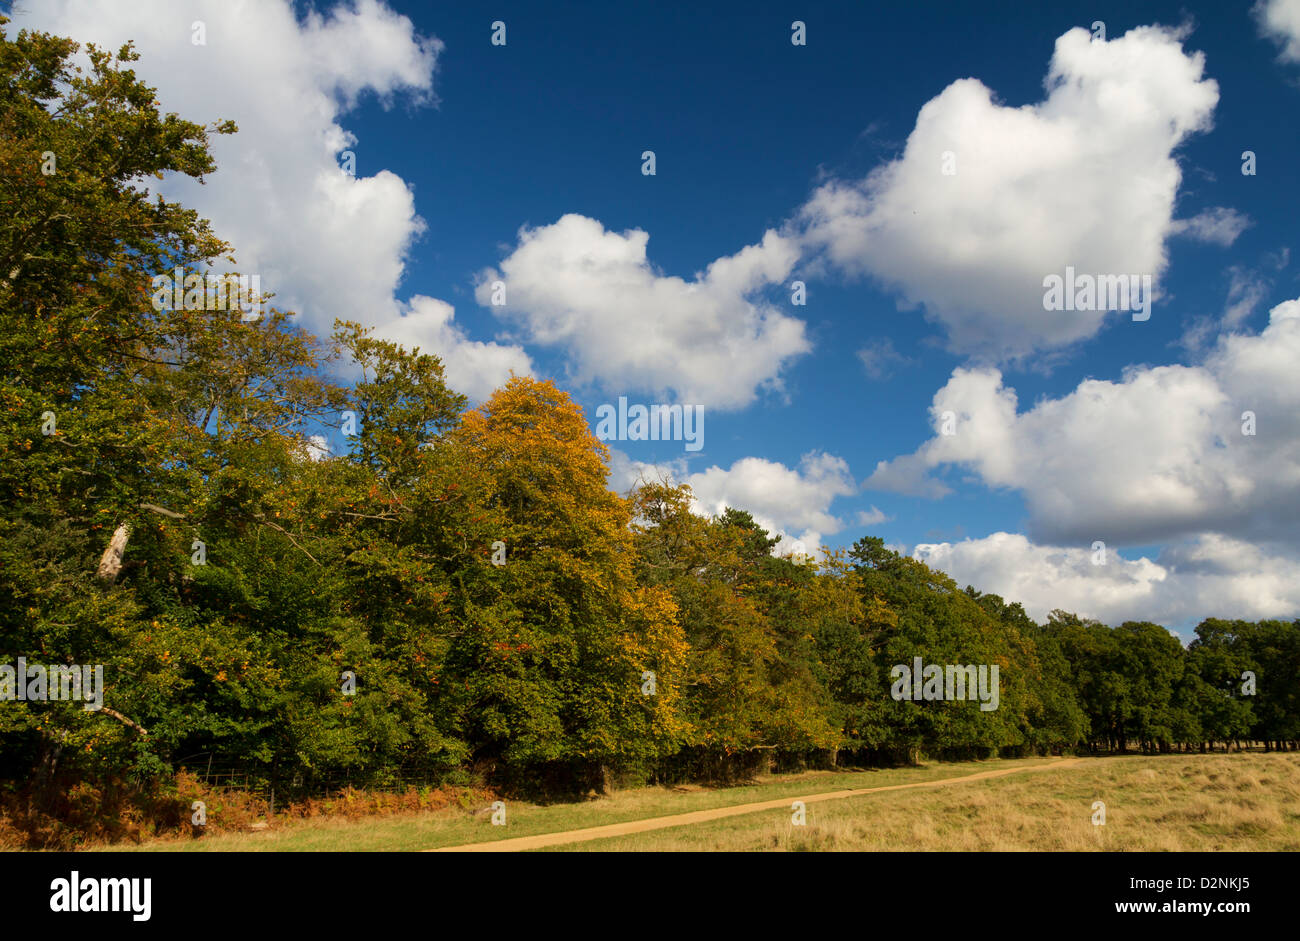 Early Autumn with cloudscape - Stock Image